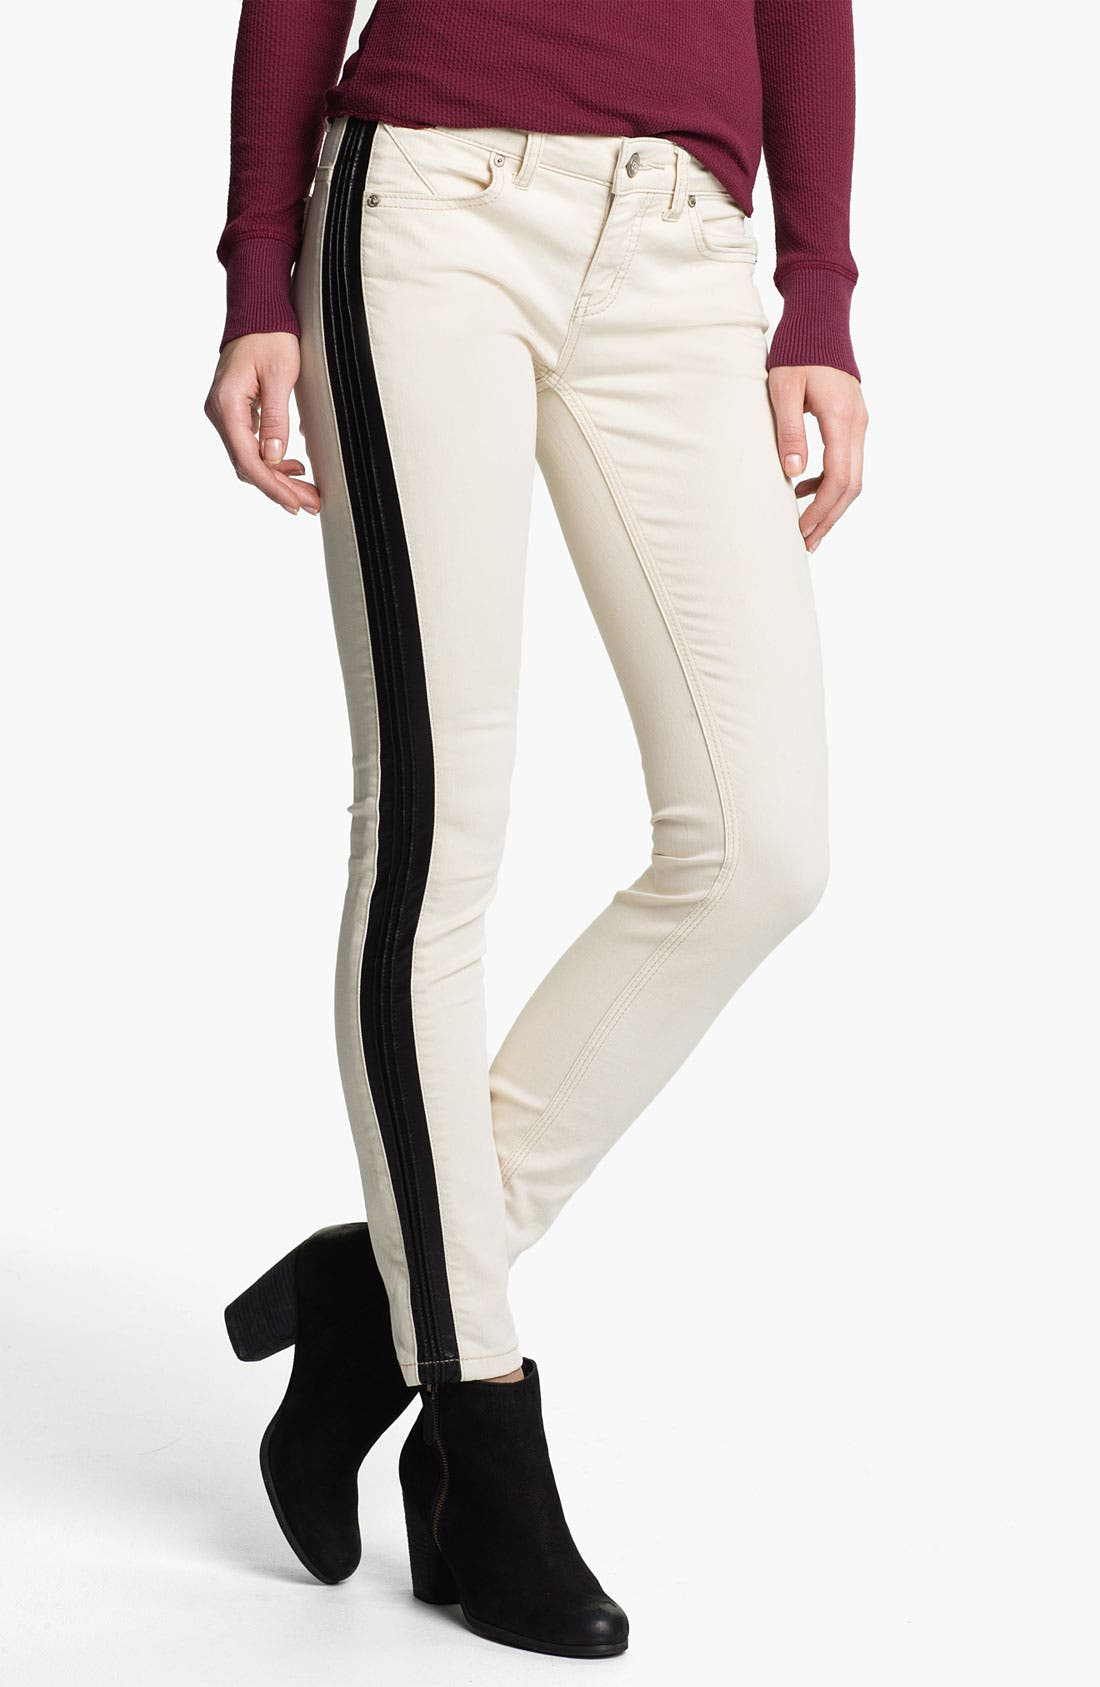 Alternate Image 1 Selected - Free People Faux Leather Stripe Skinny Jeans (Ecru)